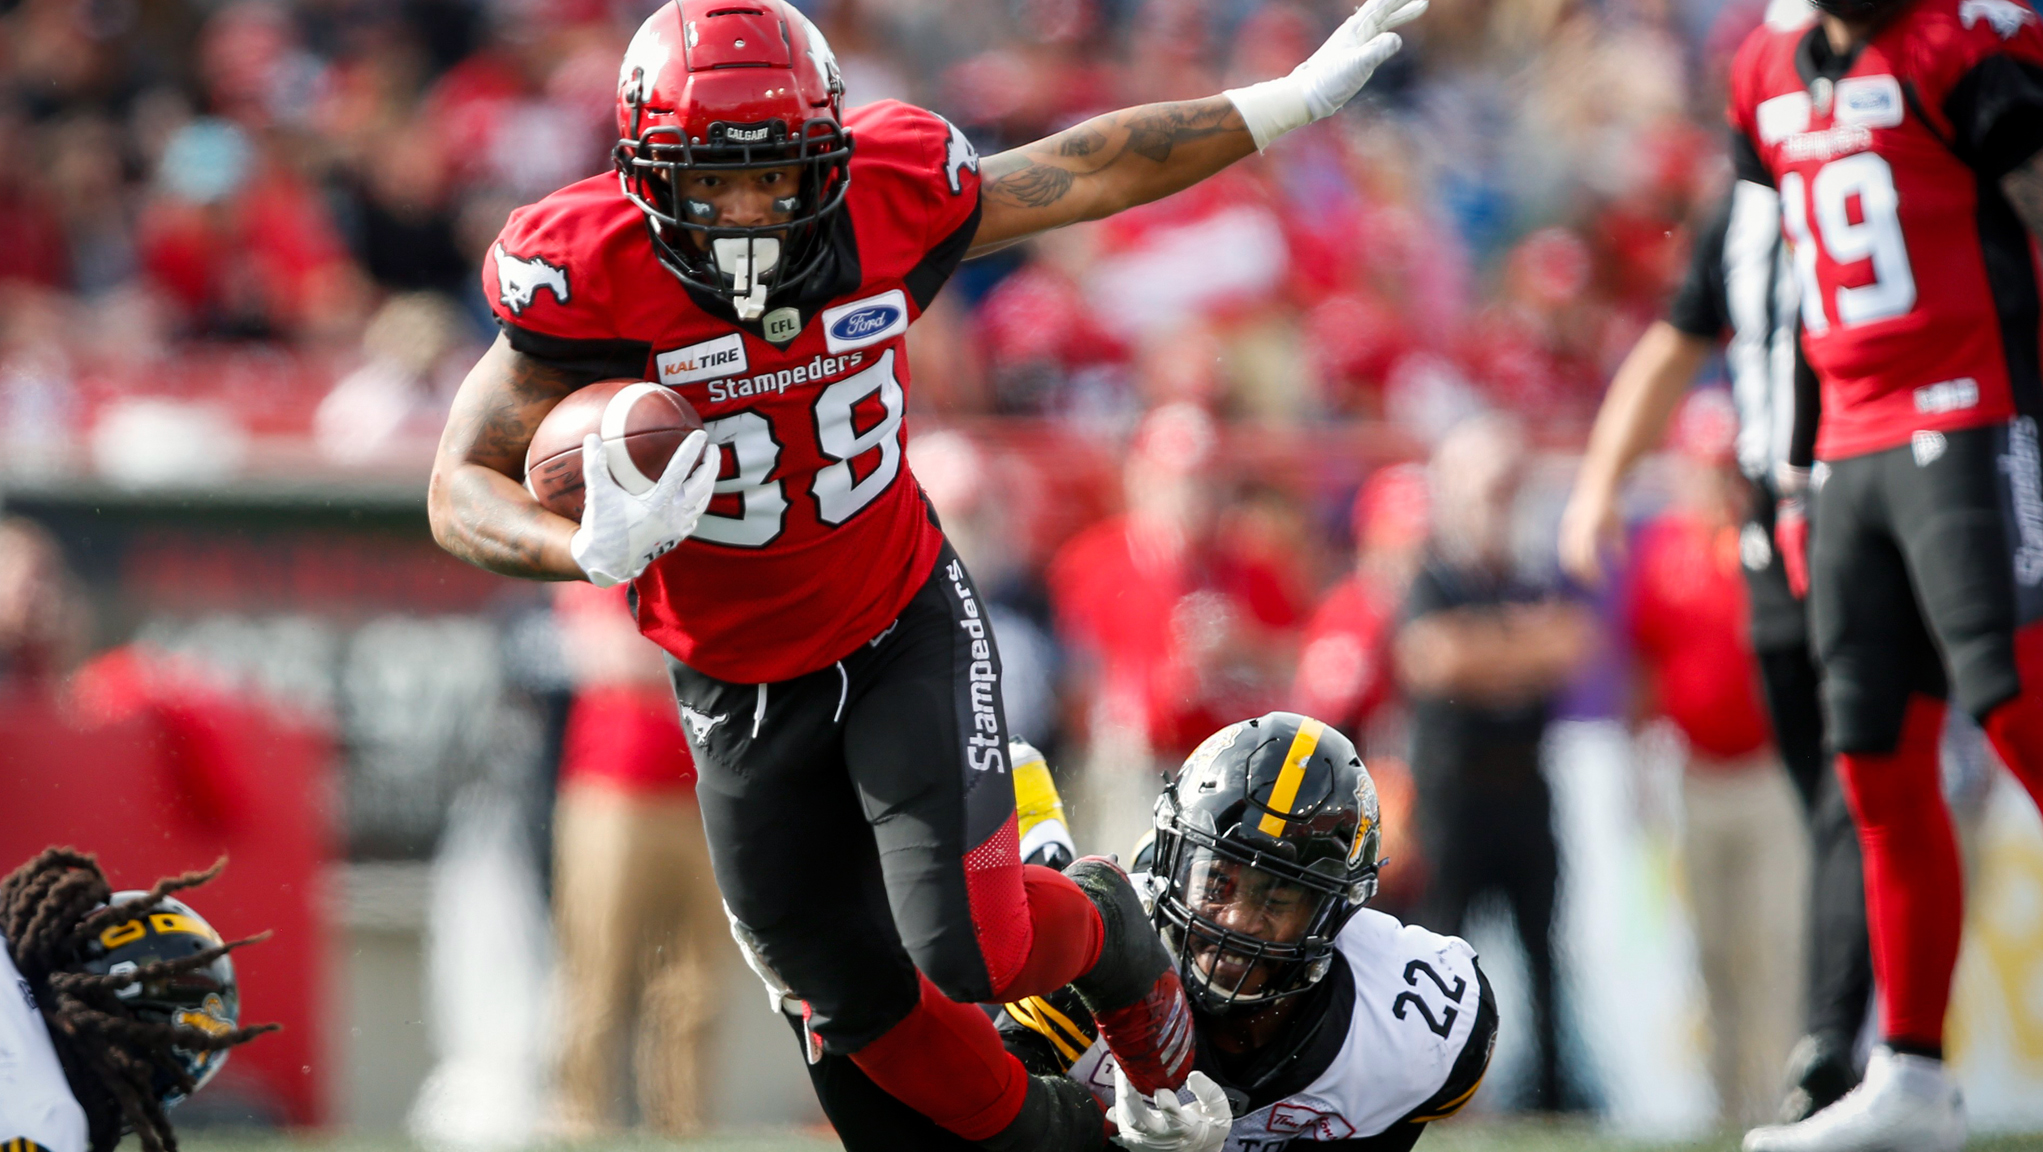 Cauz: Clutch performances nothing new for Stamps - CFL.ca